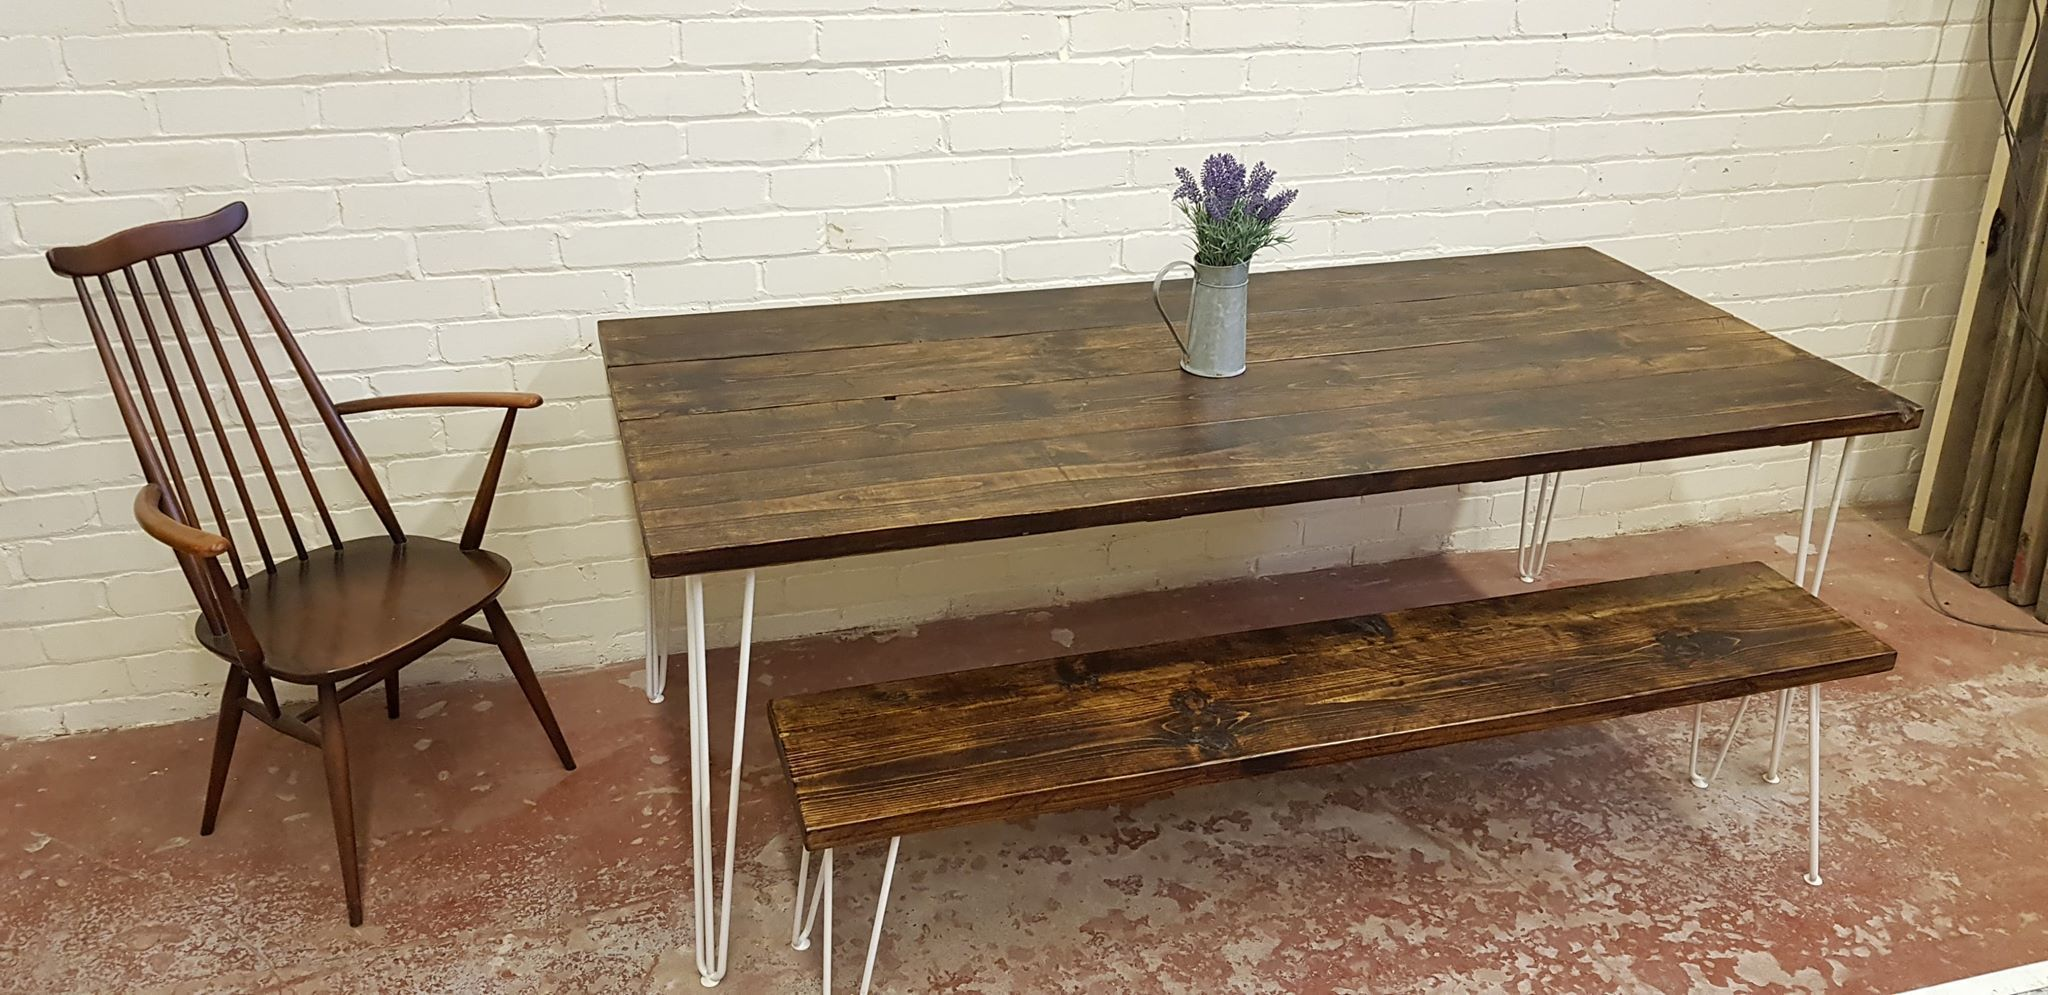 Tablo In Tudor Handmade Reclaimed Timber Dining Table Benches With Hairpin Legs